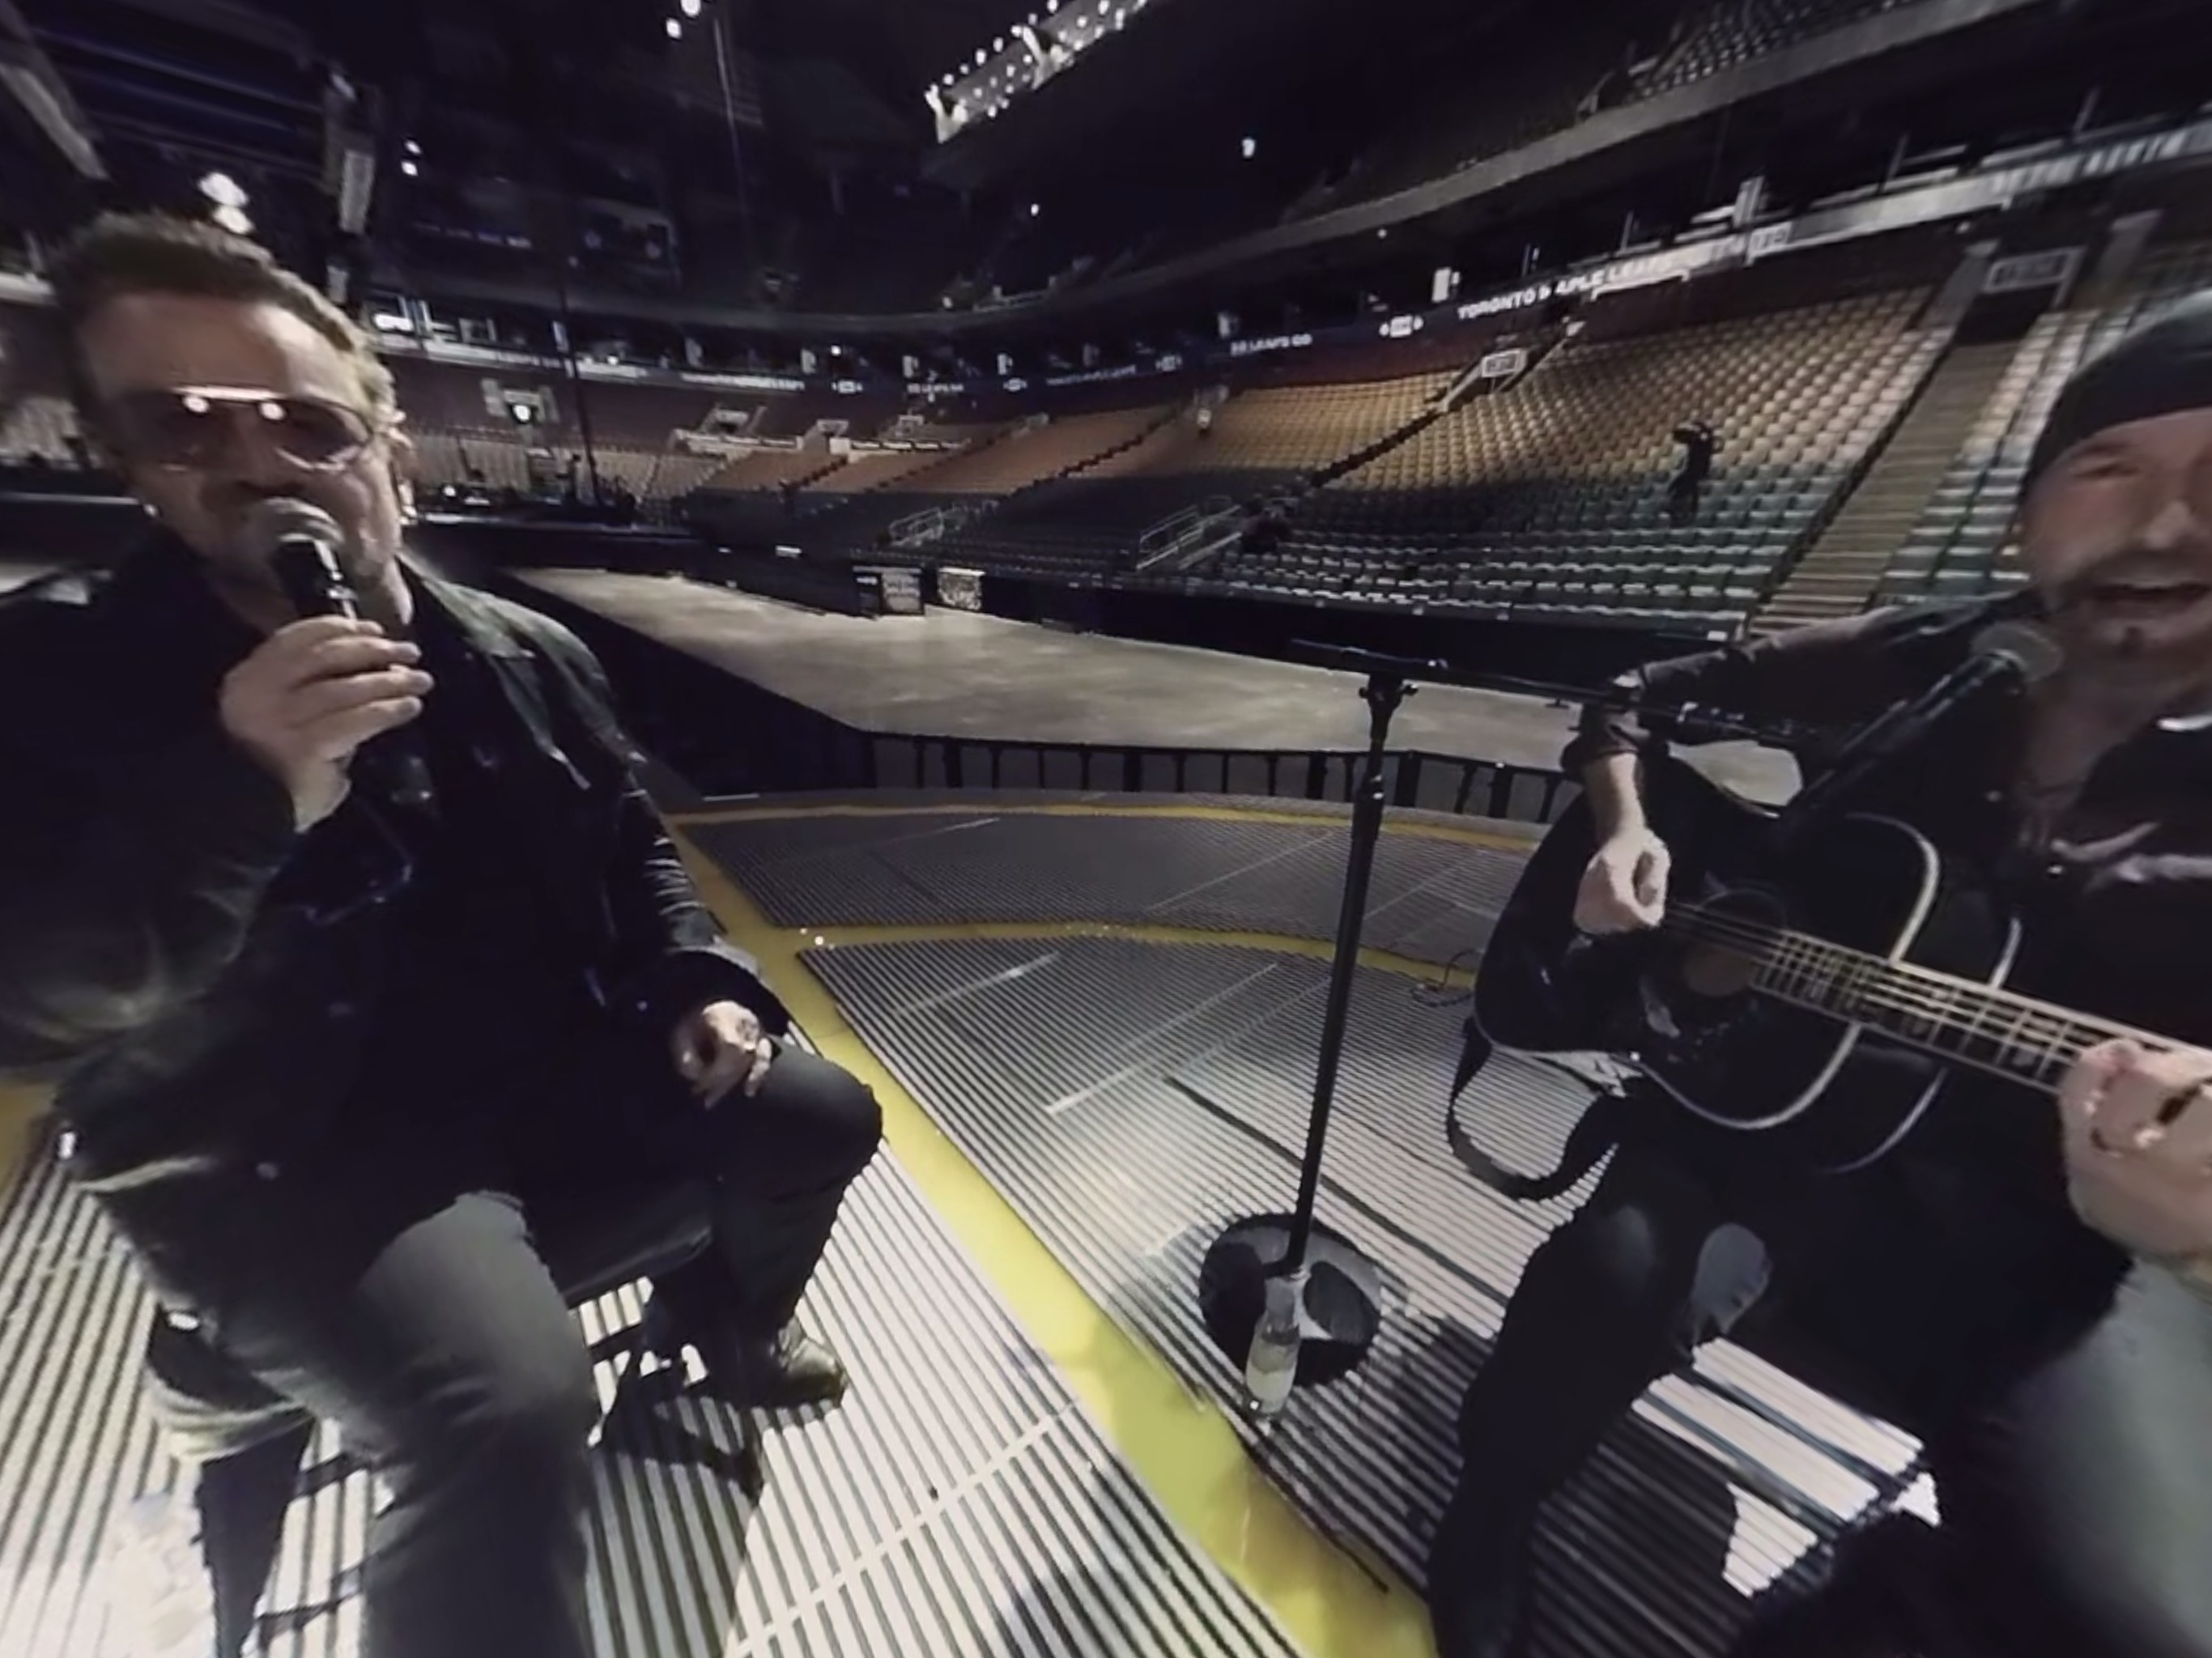 A 360-degree video of a U2 performance in the Vrse app on the iPad Pro.